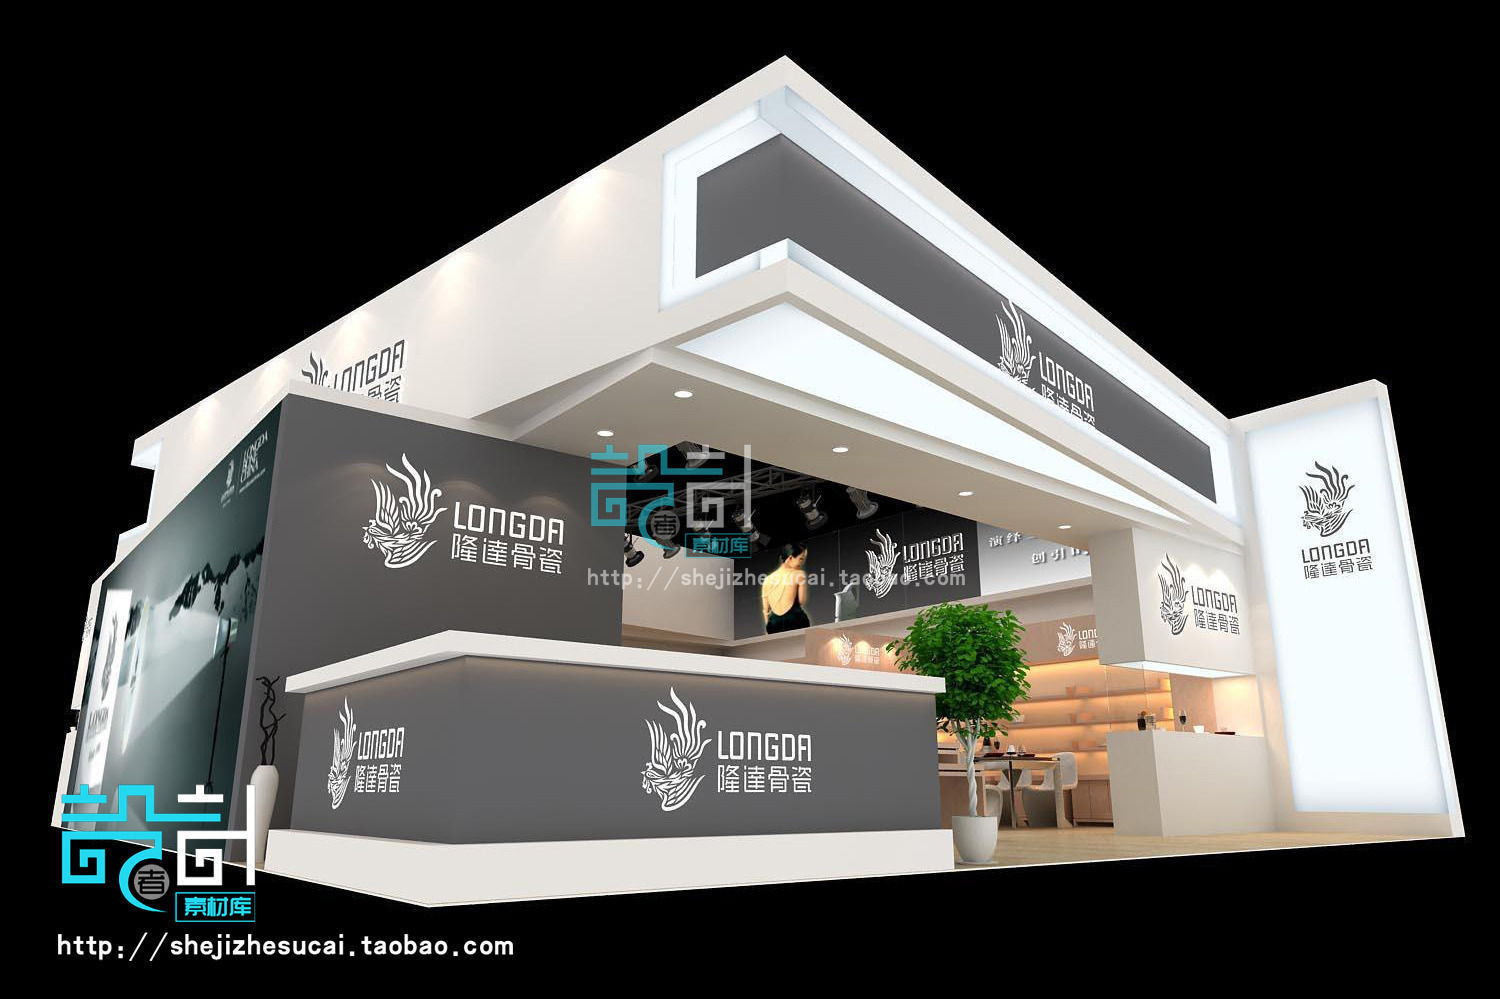 Exhibition Stand Designer Job Description : Exhibition booth d model cgtrader